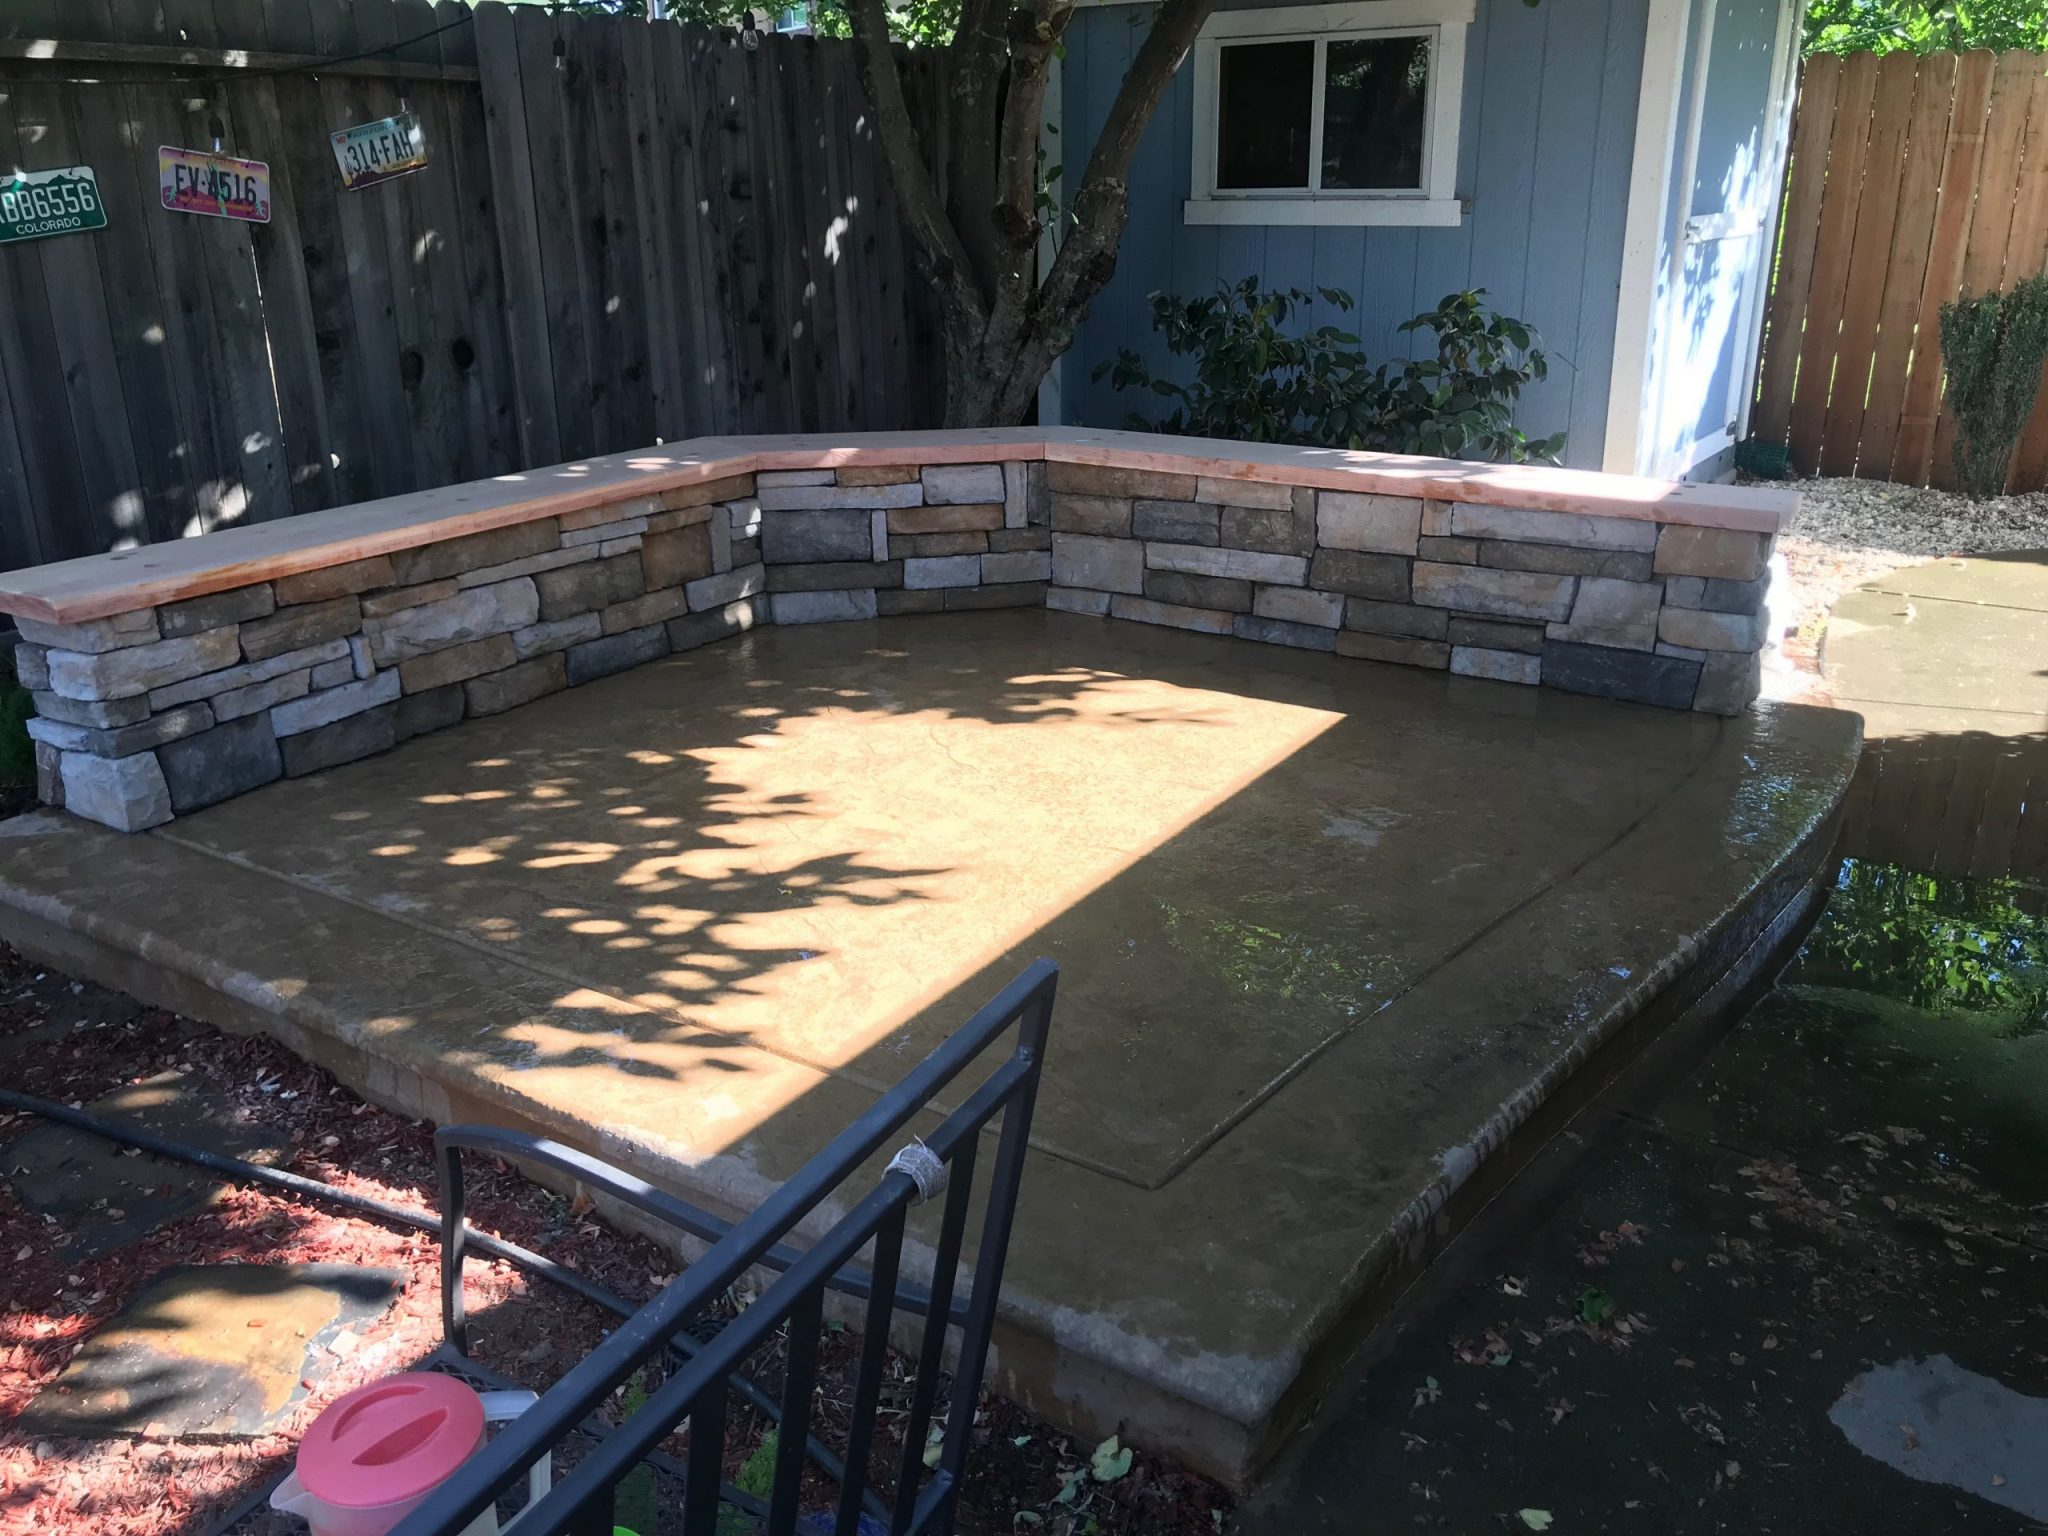 this is an image of the concord concrete masonry patio pavers project